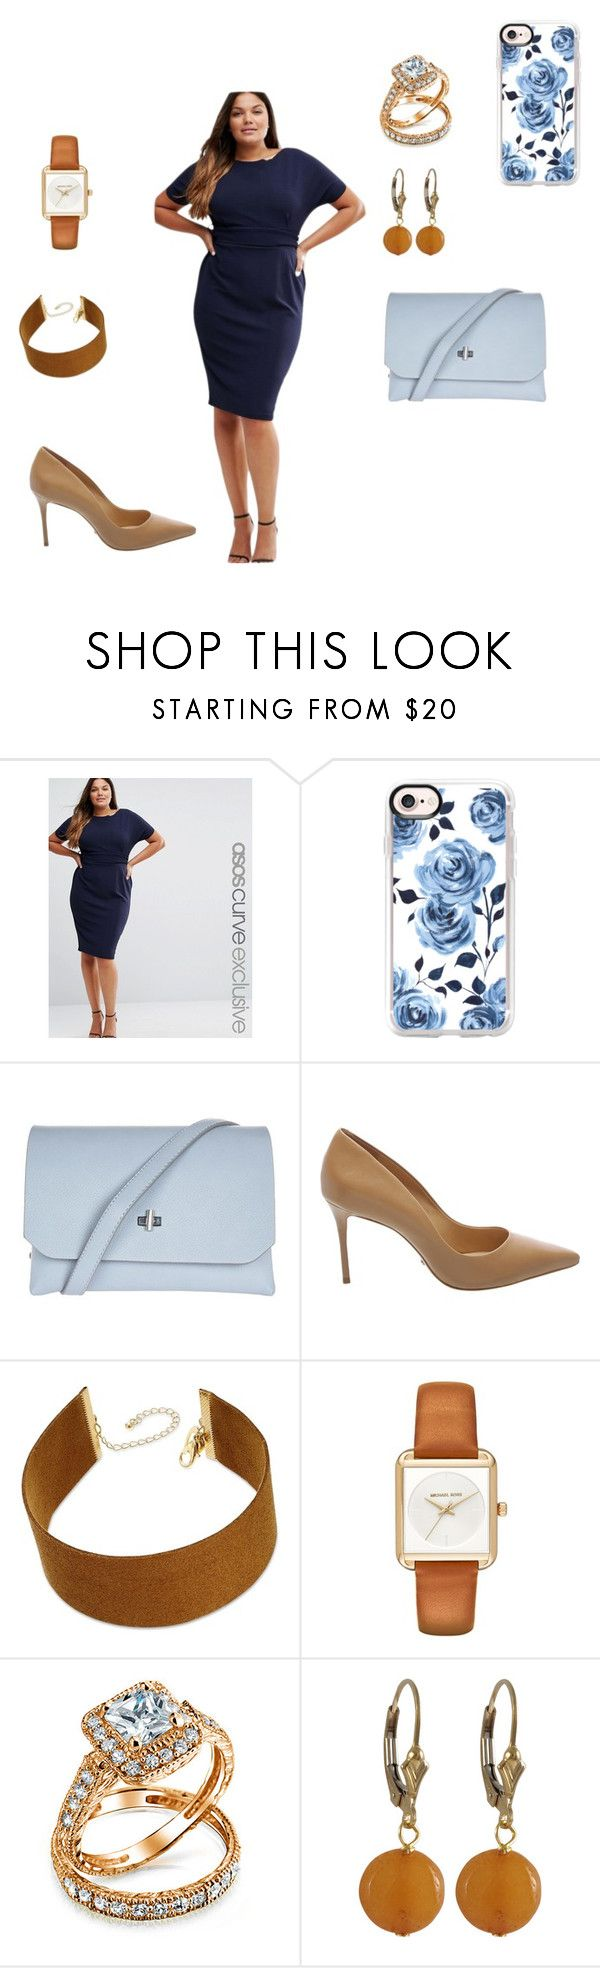 """""""Blue and Brown"""" by dgreene1051 ❤ liked on Polyvore featuring ASOS Curve, Casetify, Topshop, Schutz, Thalia Sodi, MICHAEL Michael Kors, Bling Jewelry, Luxiro and plus size dresses"""